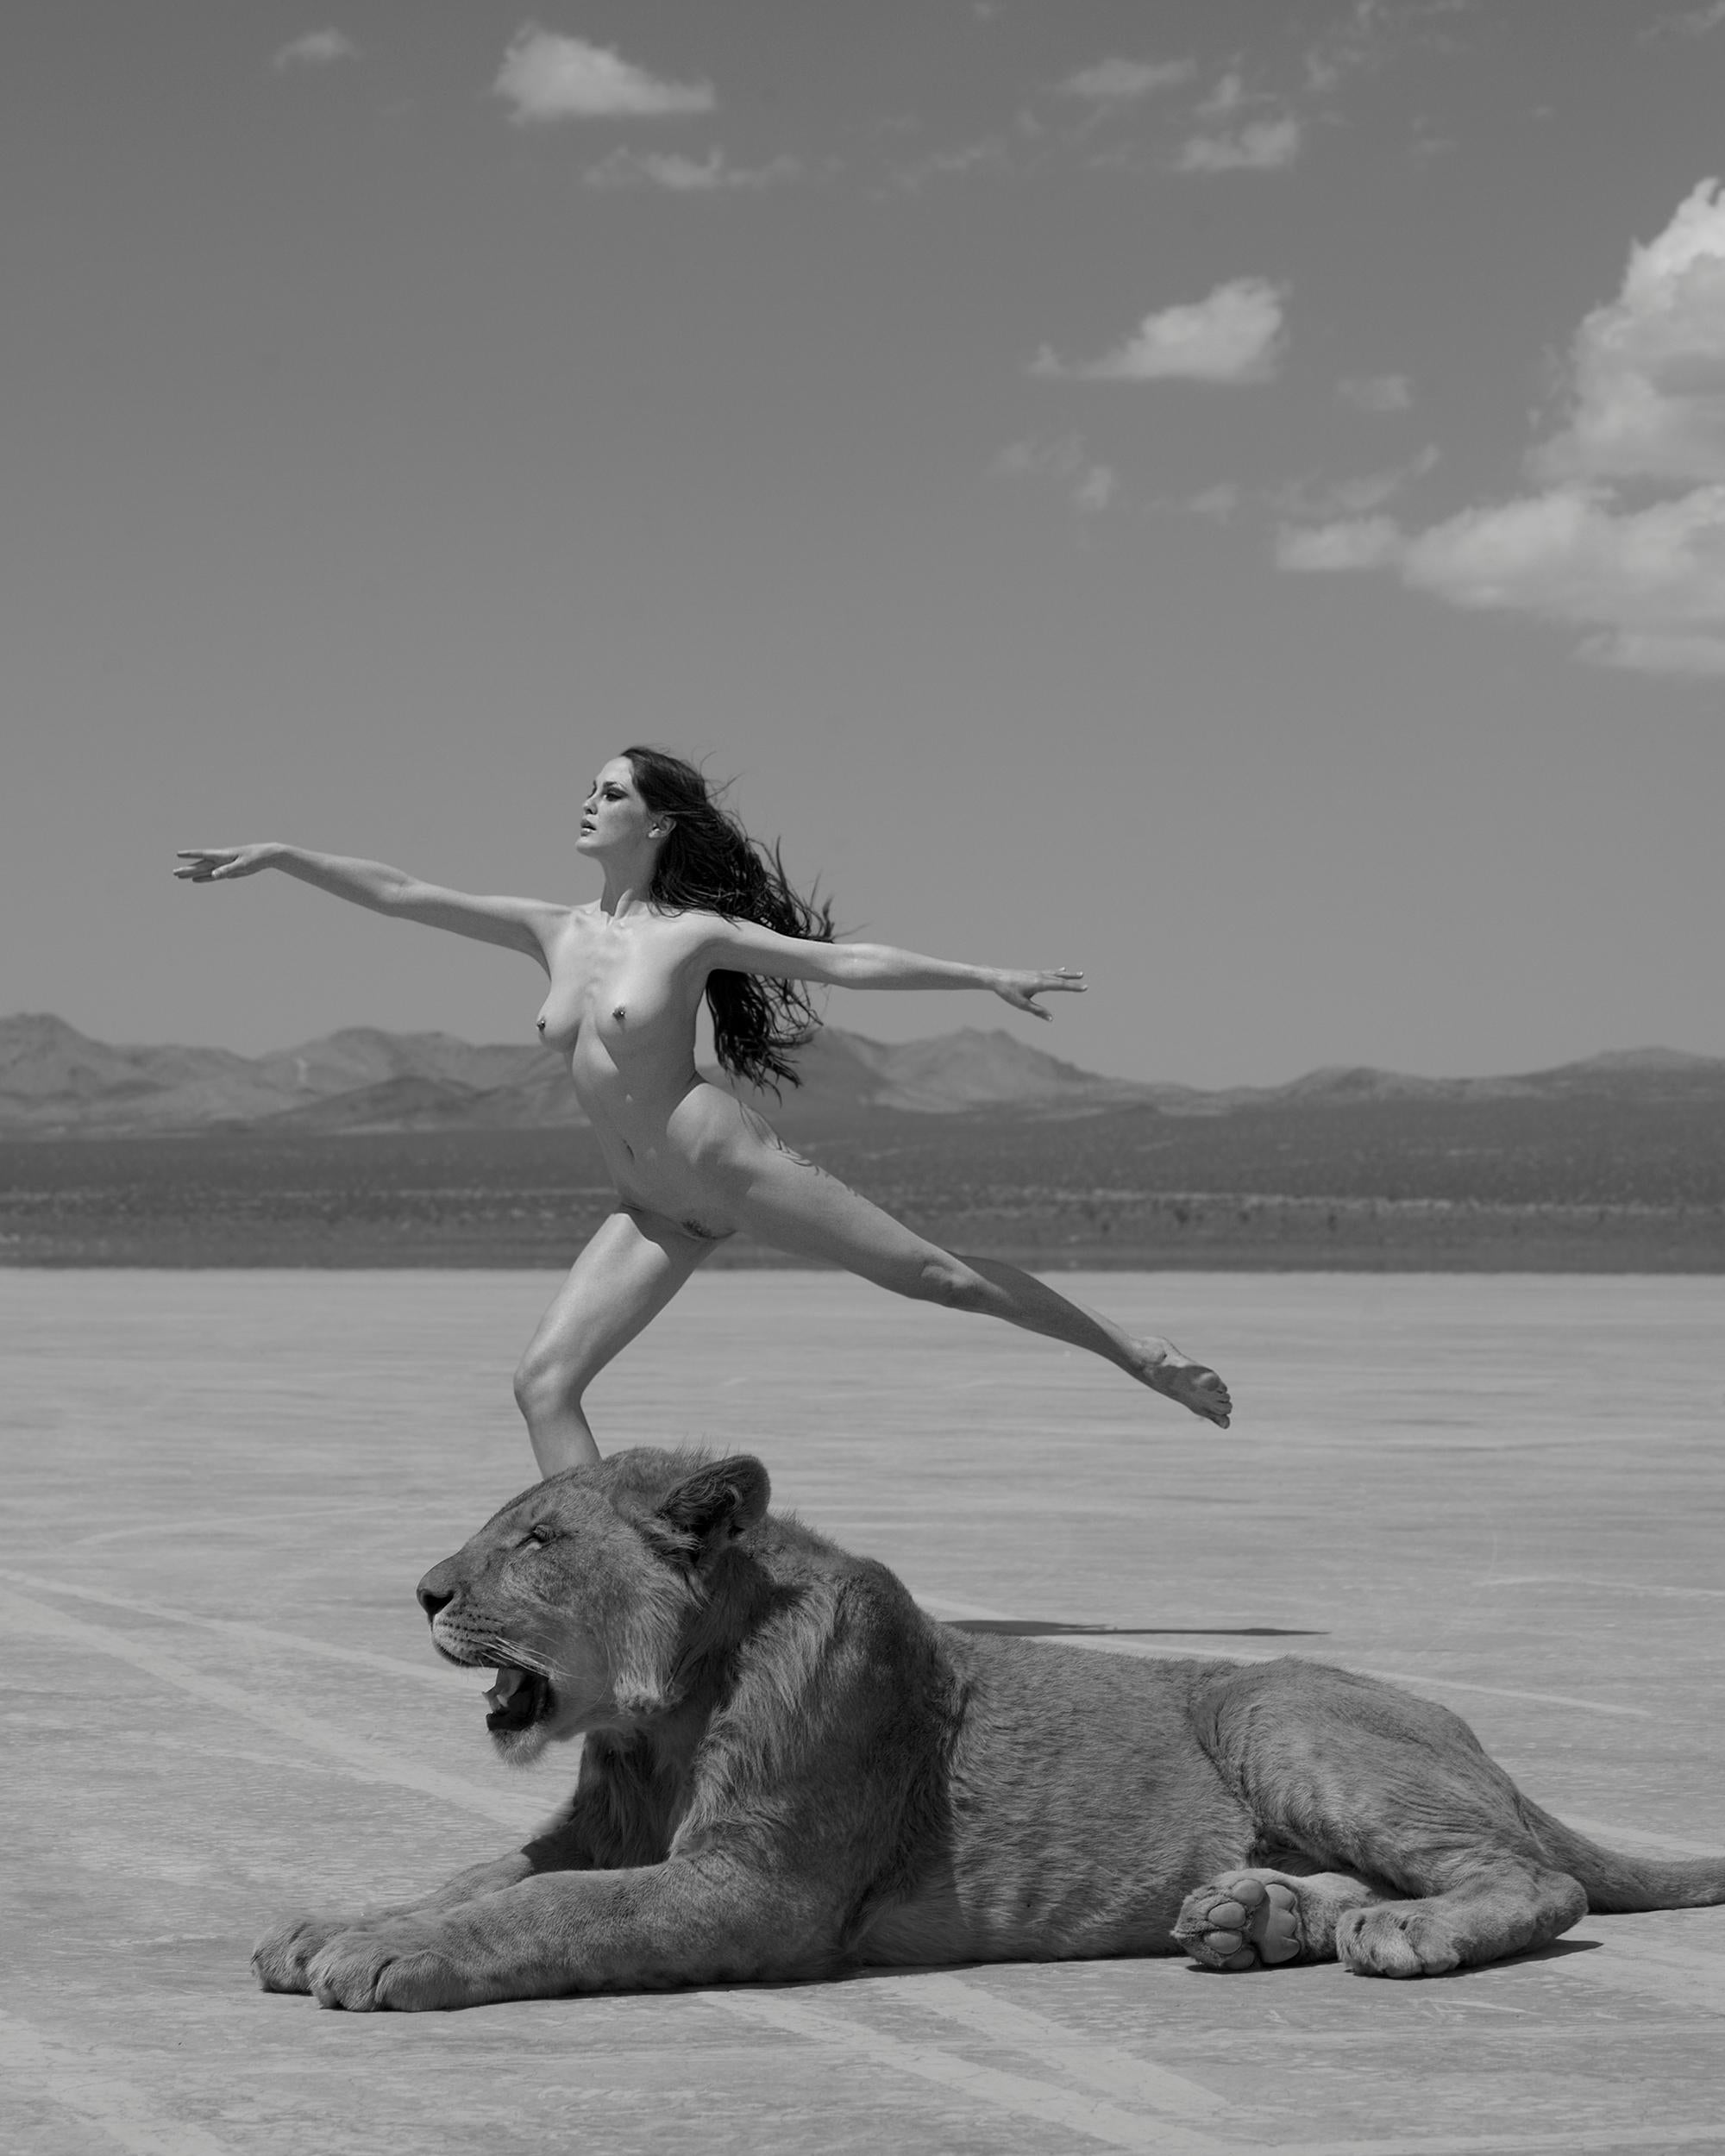 Angela Dancing, 2008, 21st century, contemporary, photography